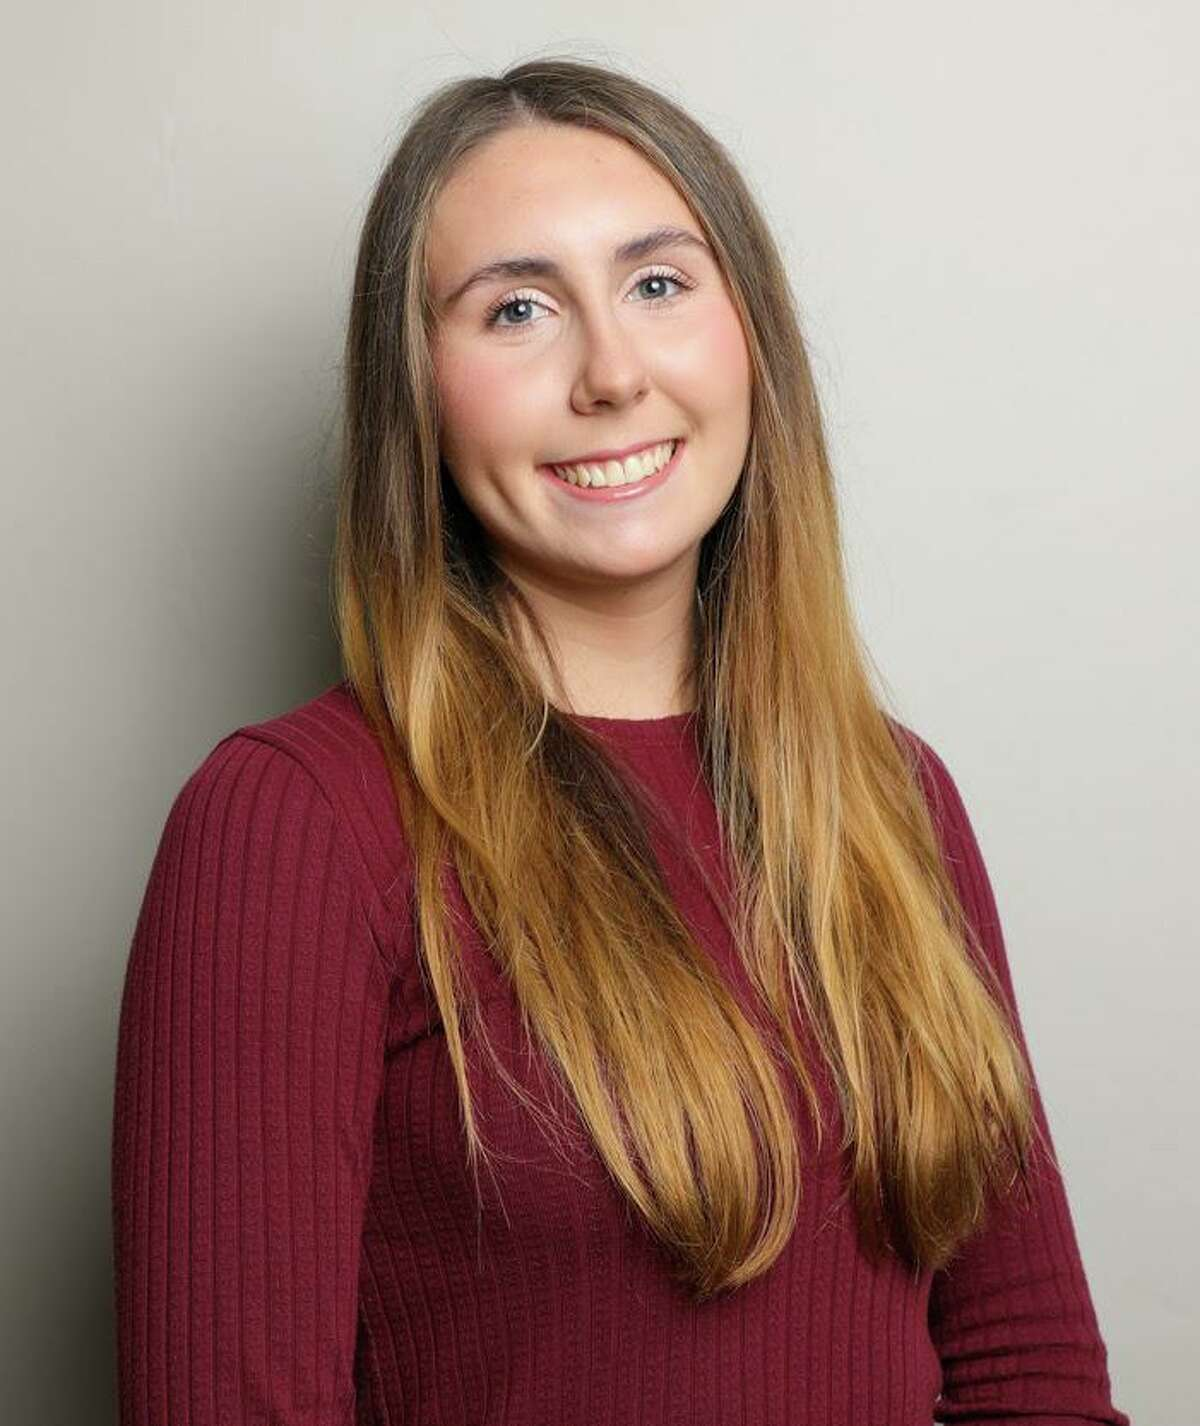 The Accounting Scholarship Foundation of the Connecticut Society of Certified Public Accountants presented Fairfield University student Bria Hemphill of Middletown with a Rising Sophomore Accounting Scholarship.